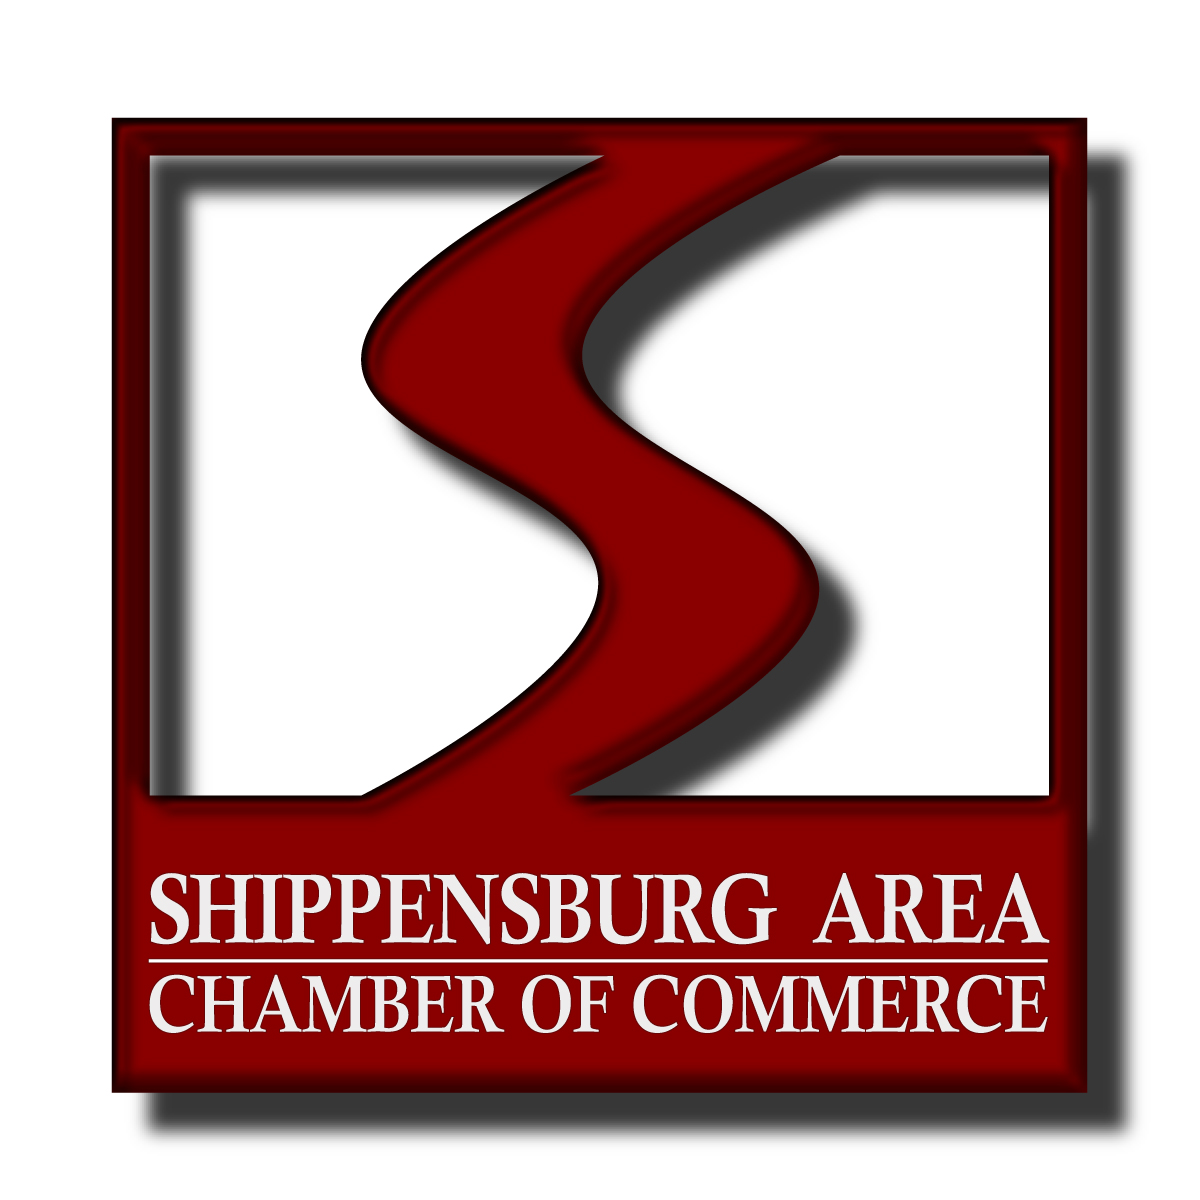 Shippensburg Chamber of Commerce